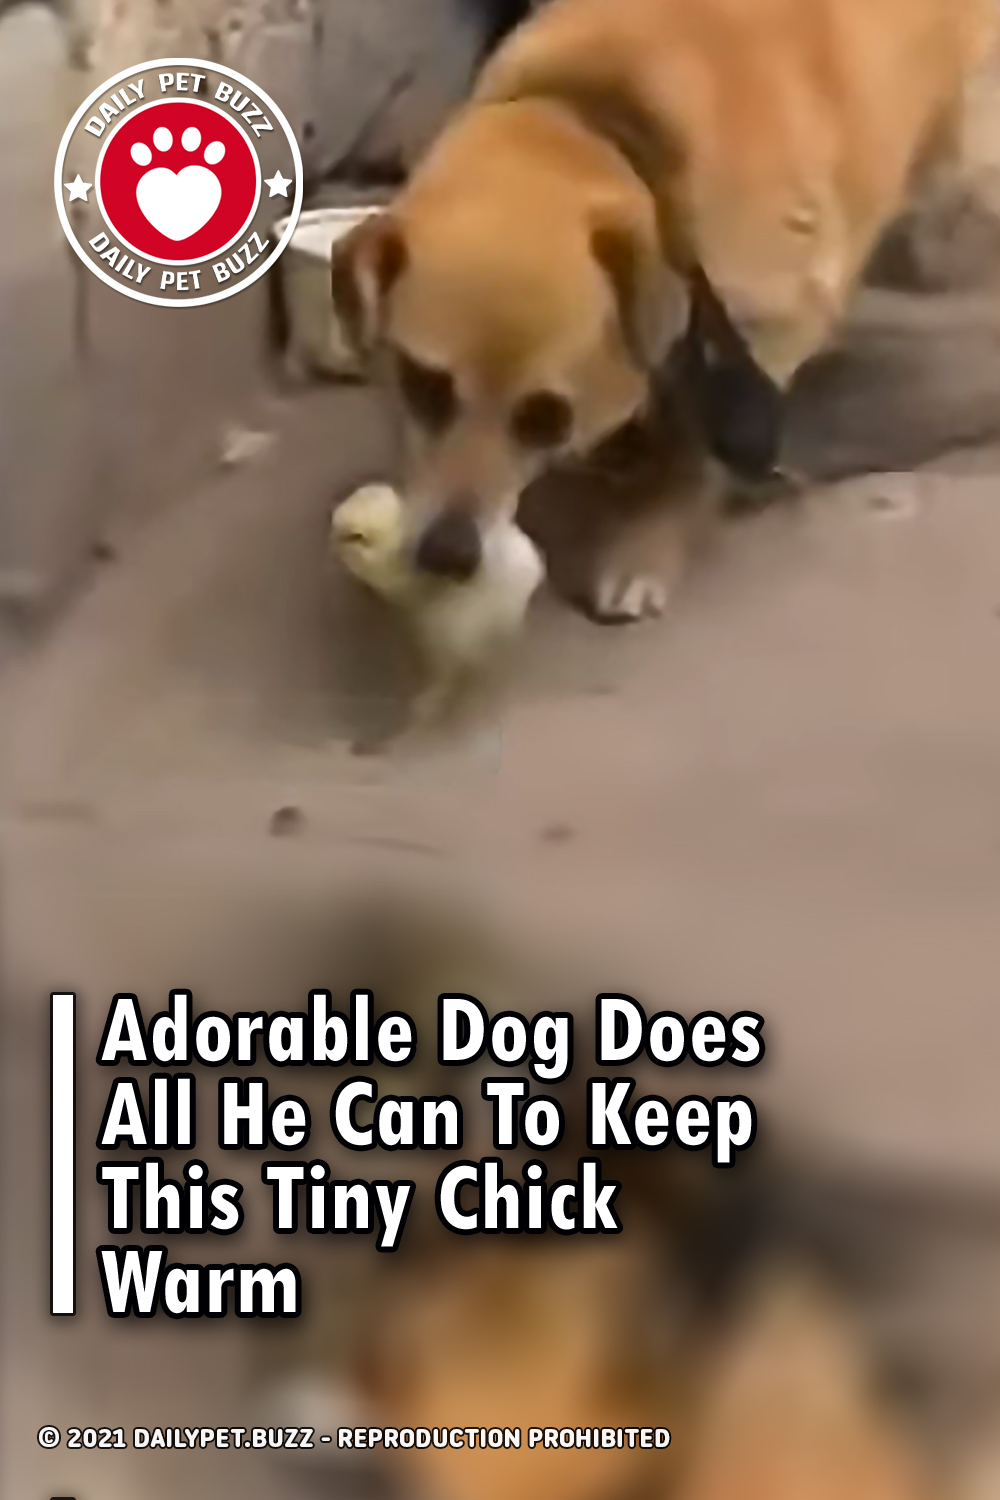 Adorable Dog Does All He Can To Keep This Tiny Chick Warm